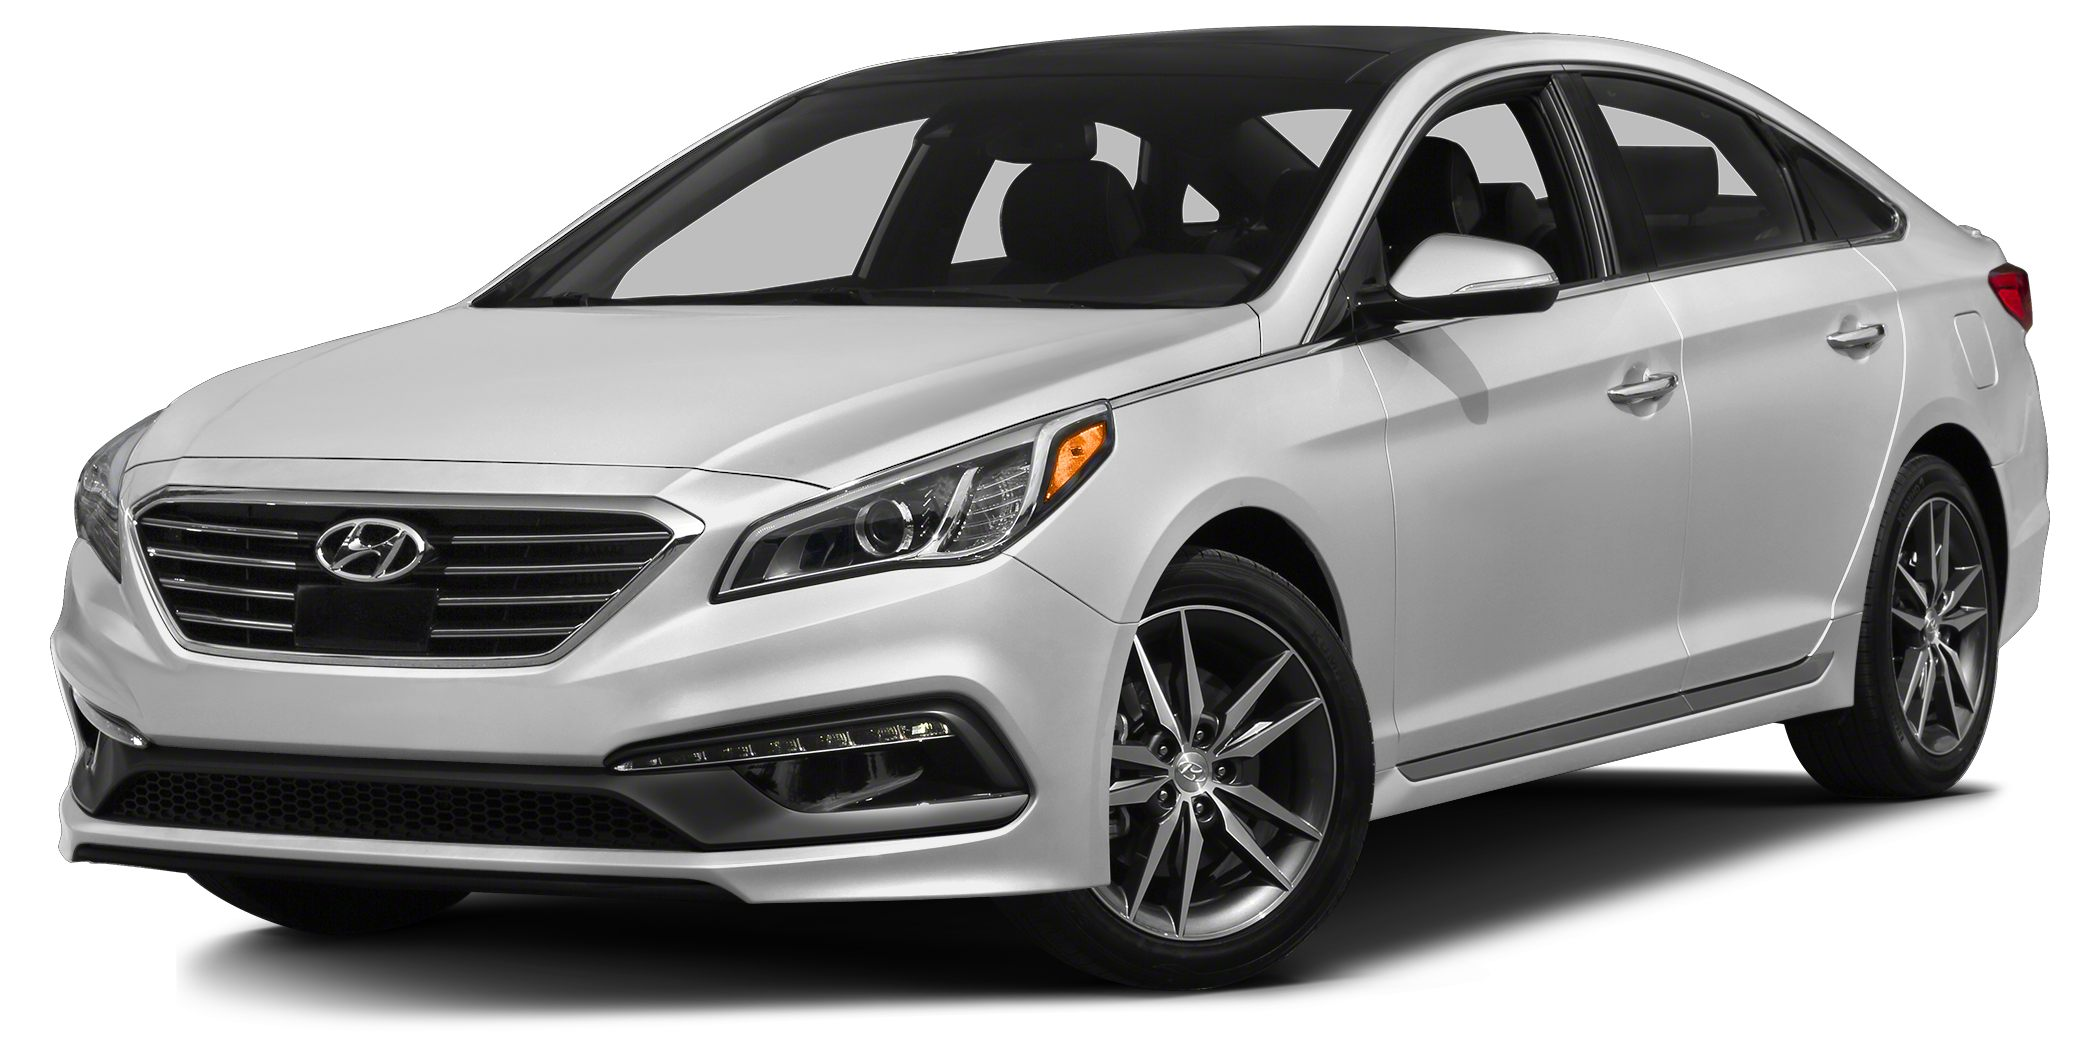 2015 Hyundai Sonata SE Price includes 1500 - Retail Bonus Cash Exp 0731 Miles 10Color Sym